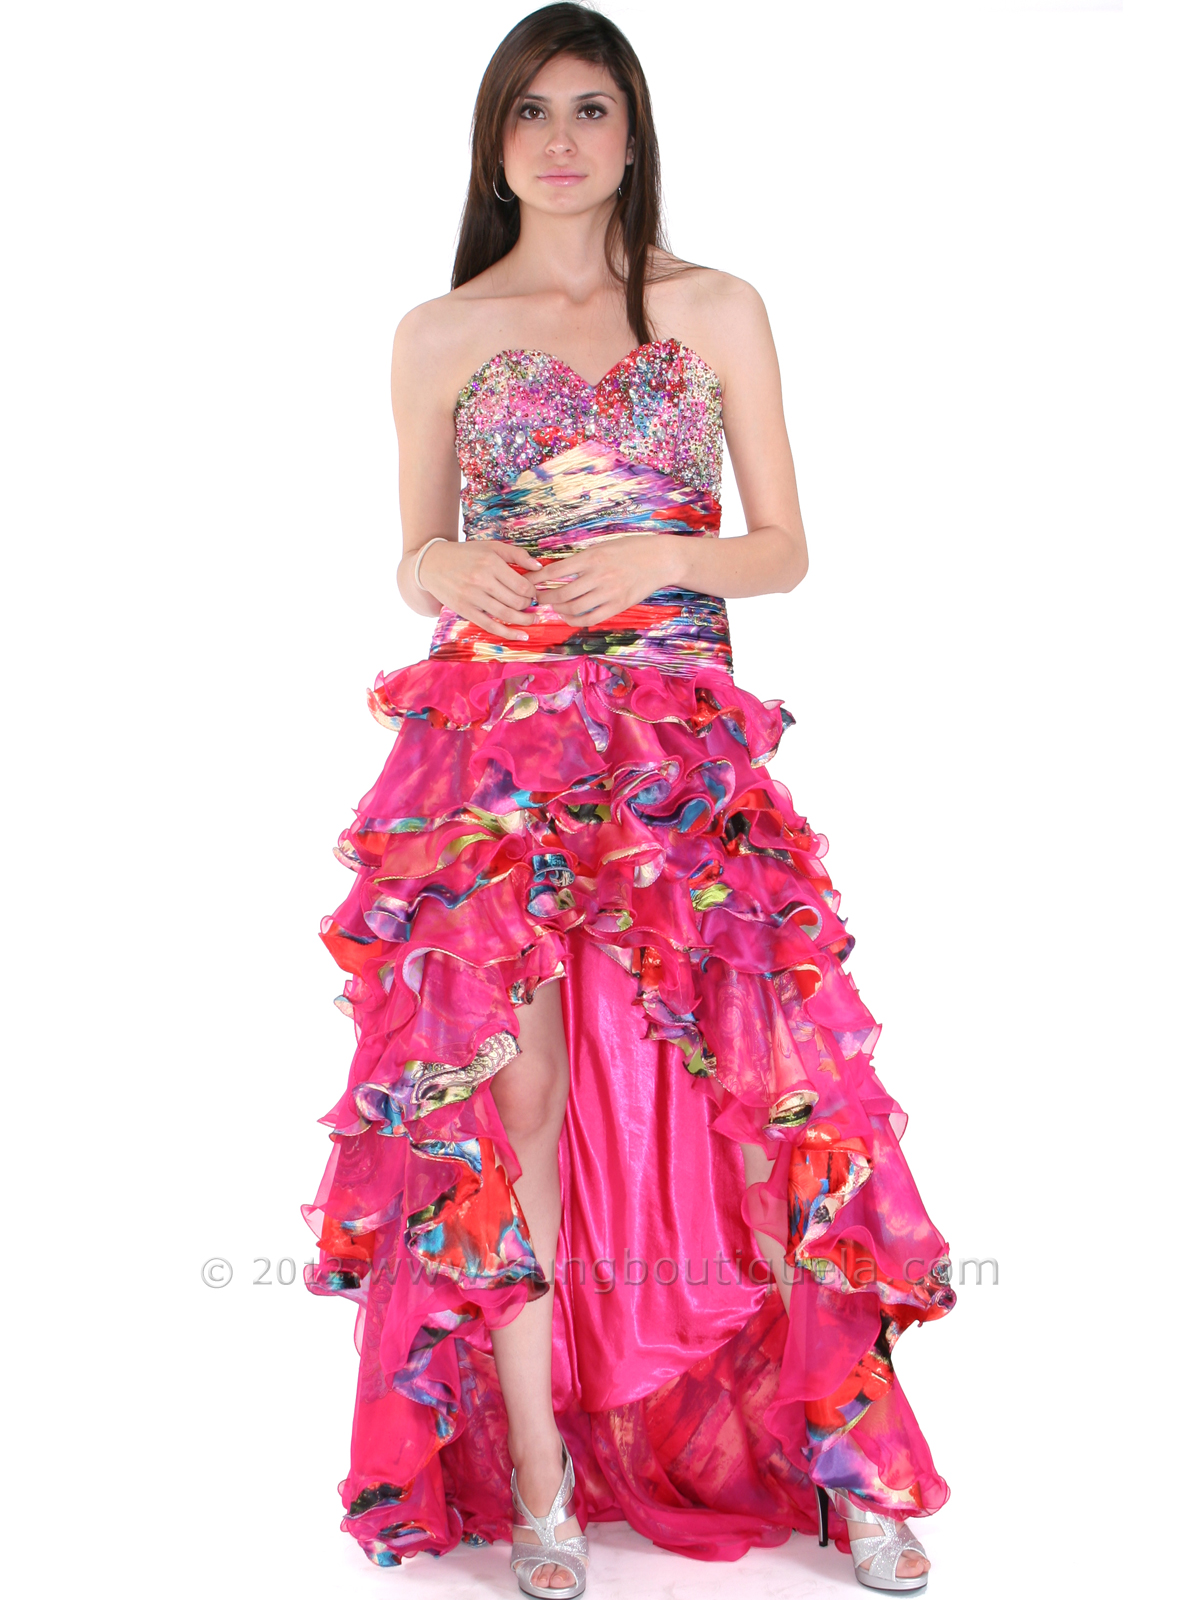 Strapless High Low Ruffle Print Prom Dress | Sung Boutique L.A.